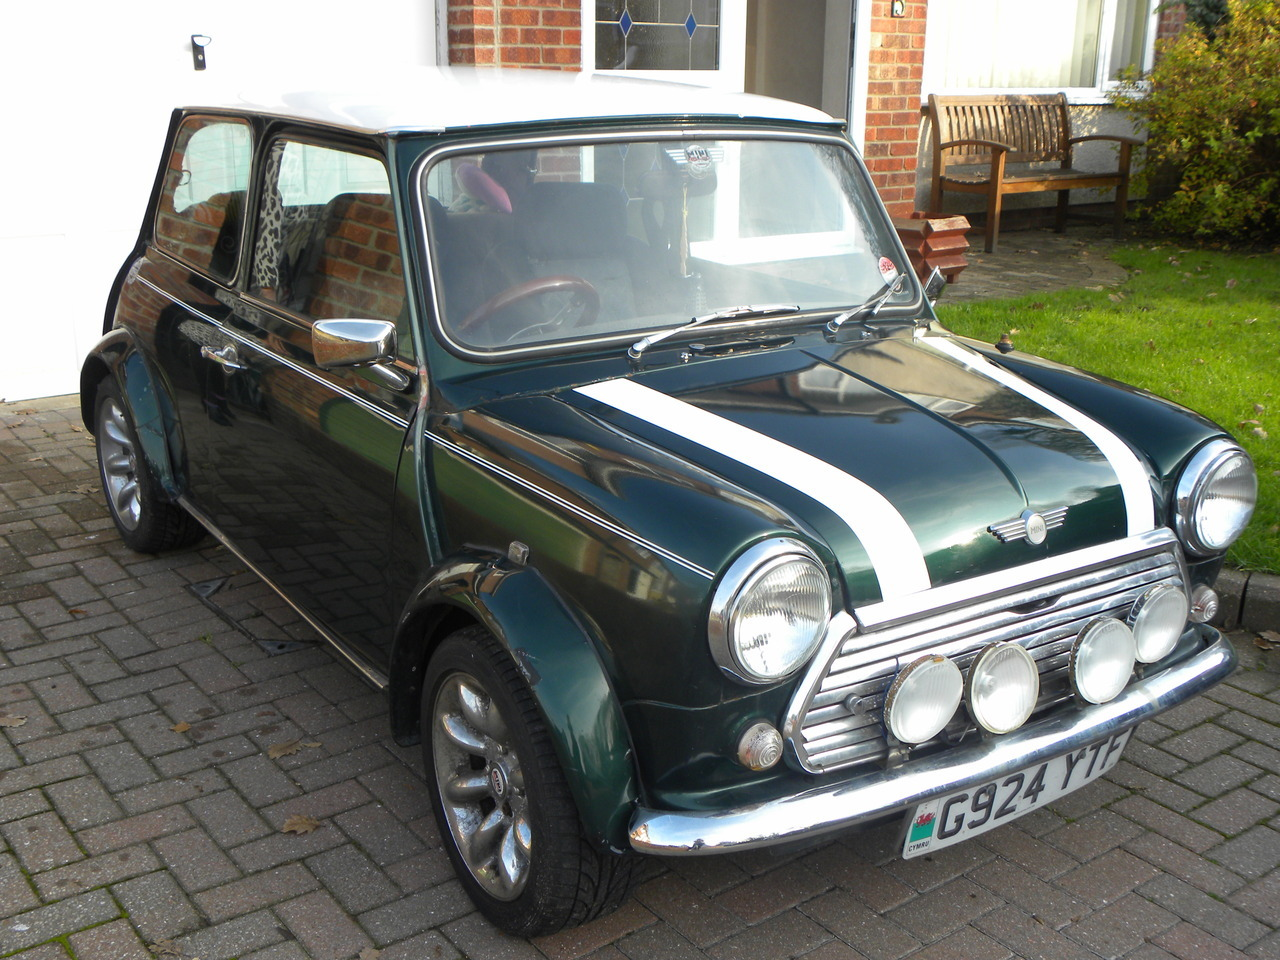 fuckyeahclassicmini:  My 1989 Mini Cooper, Bert. He was my first car and I miss him dearly! Bert was you first car!? Wow, I can't imagine what car you have today jaja.  Thanks veru much!